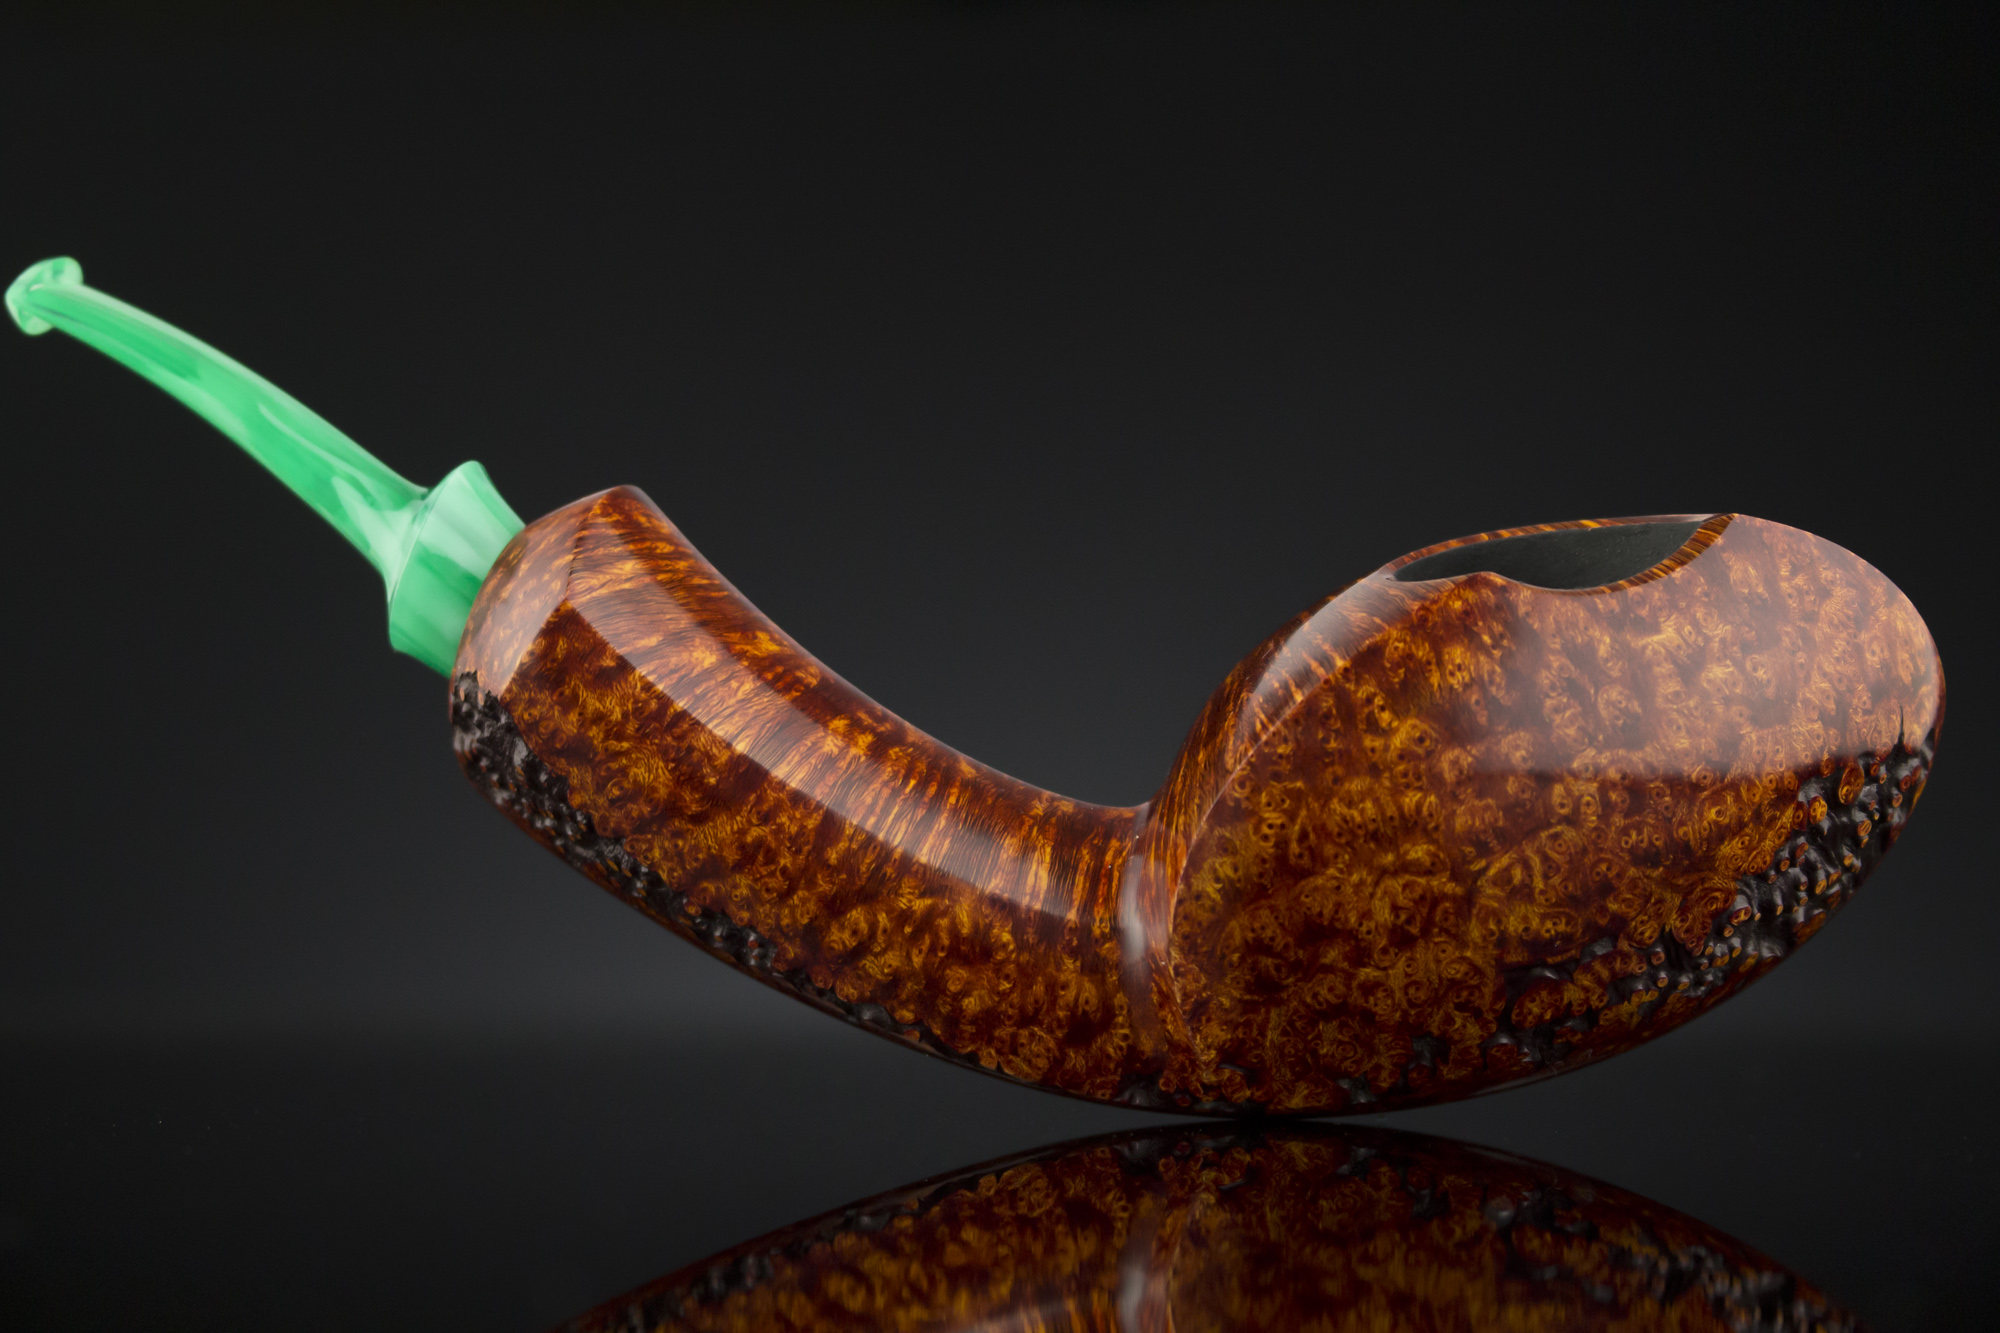 Yeti Pipe #392- A plateaux-crested blowfish with vintage bakelite stem.